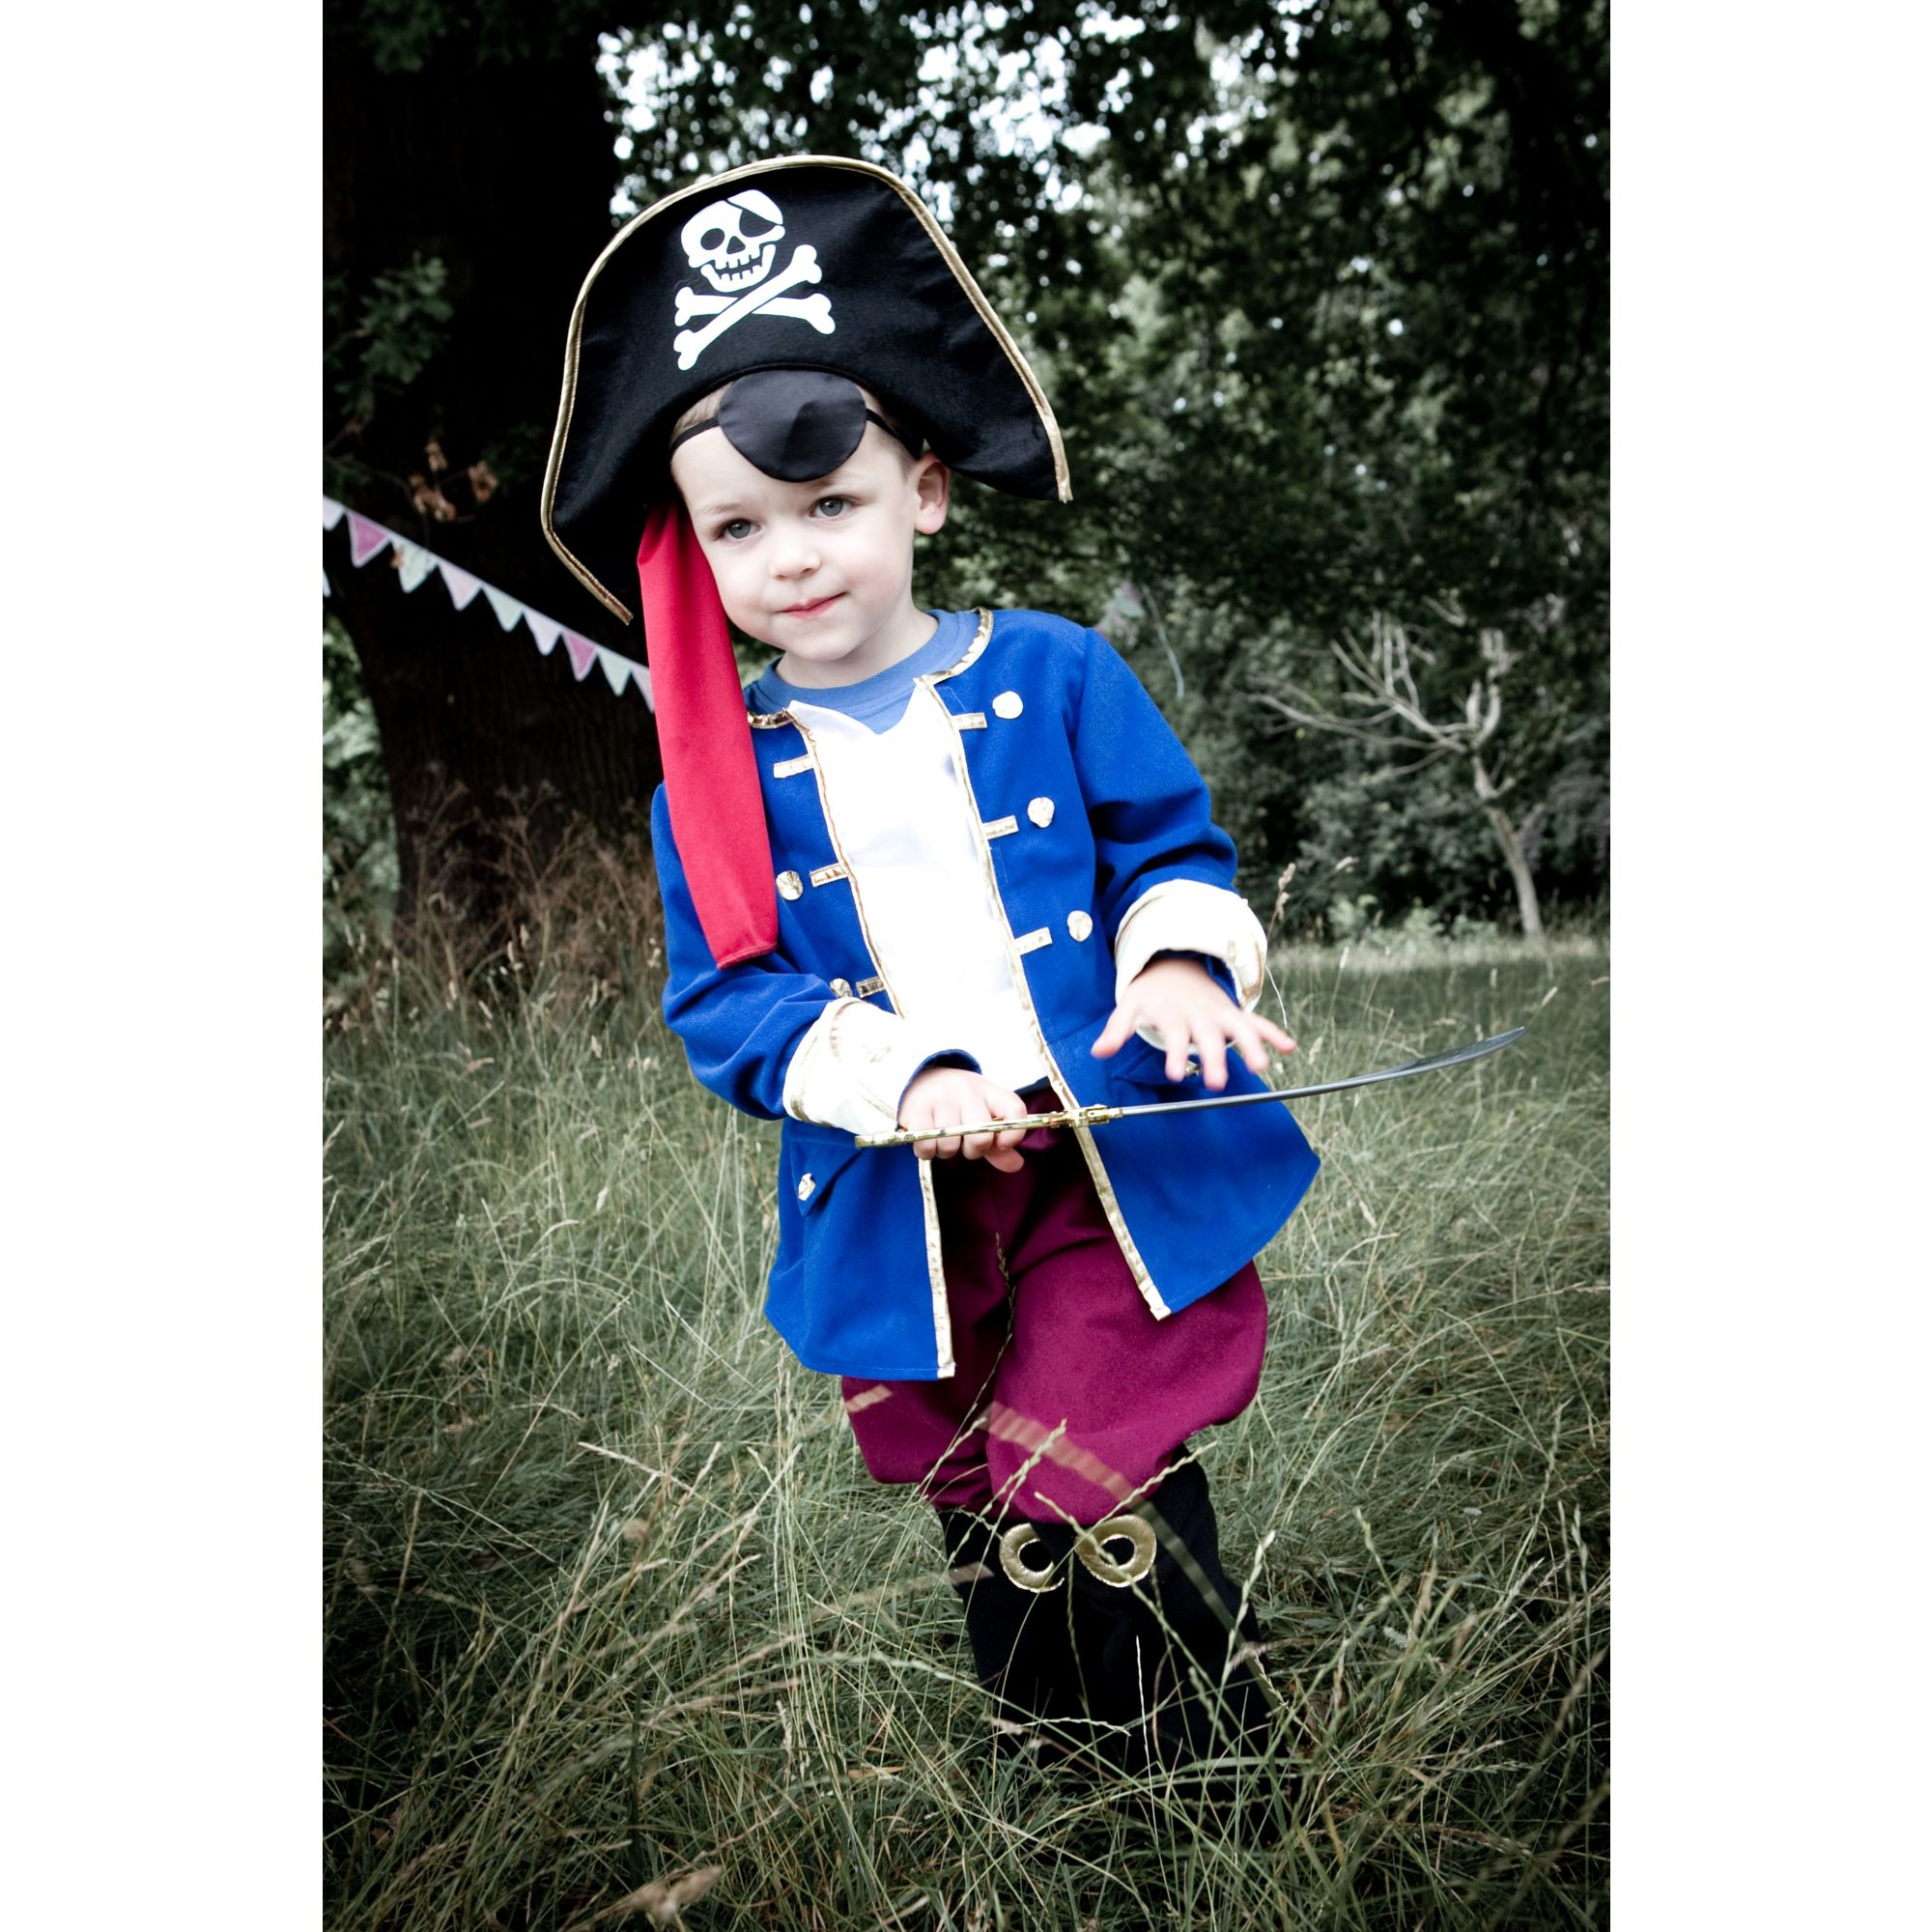 Captain pirate dress up 6 - 8